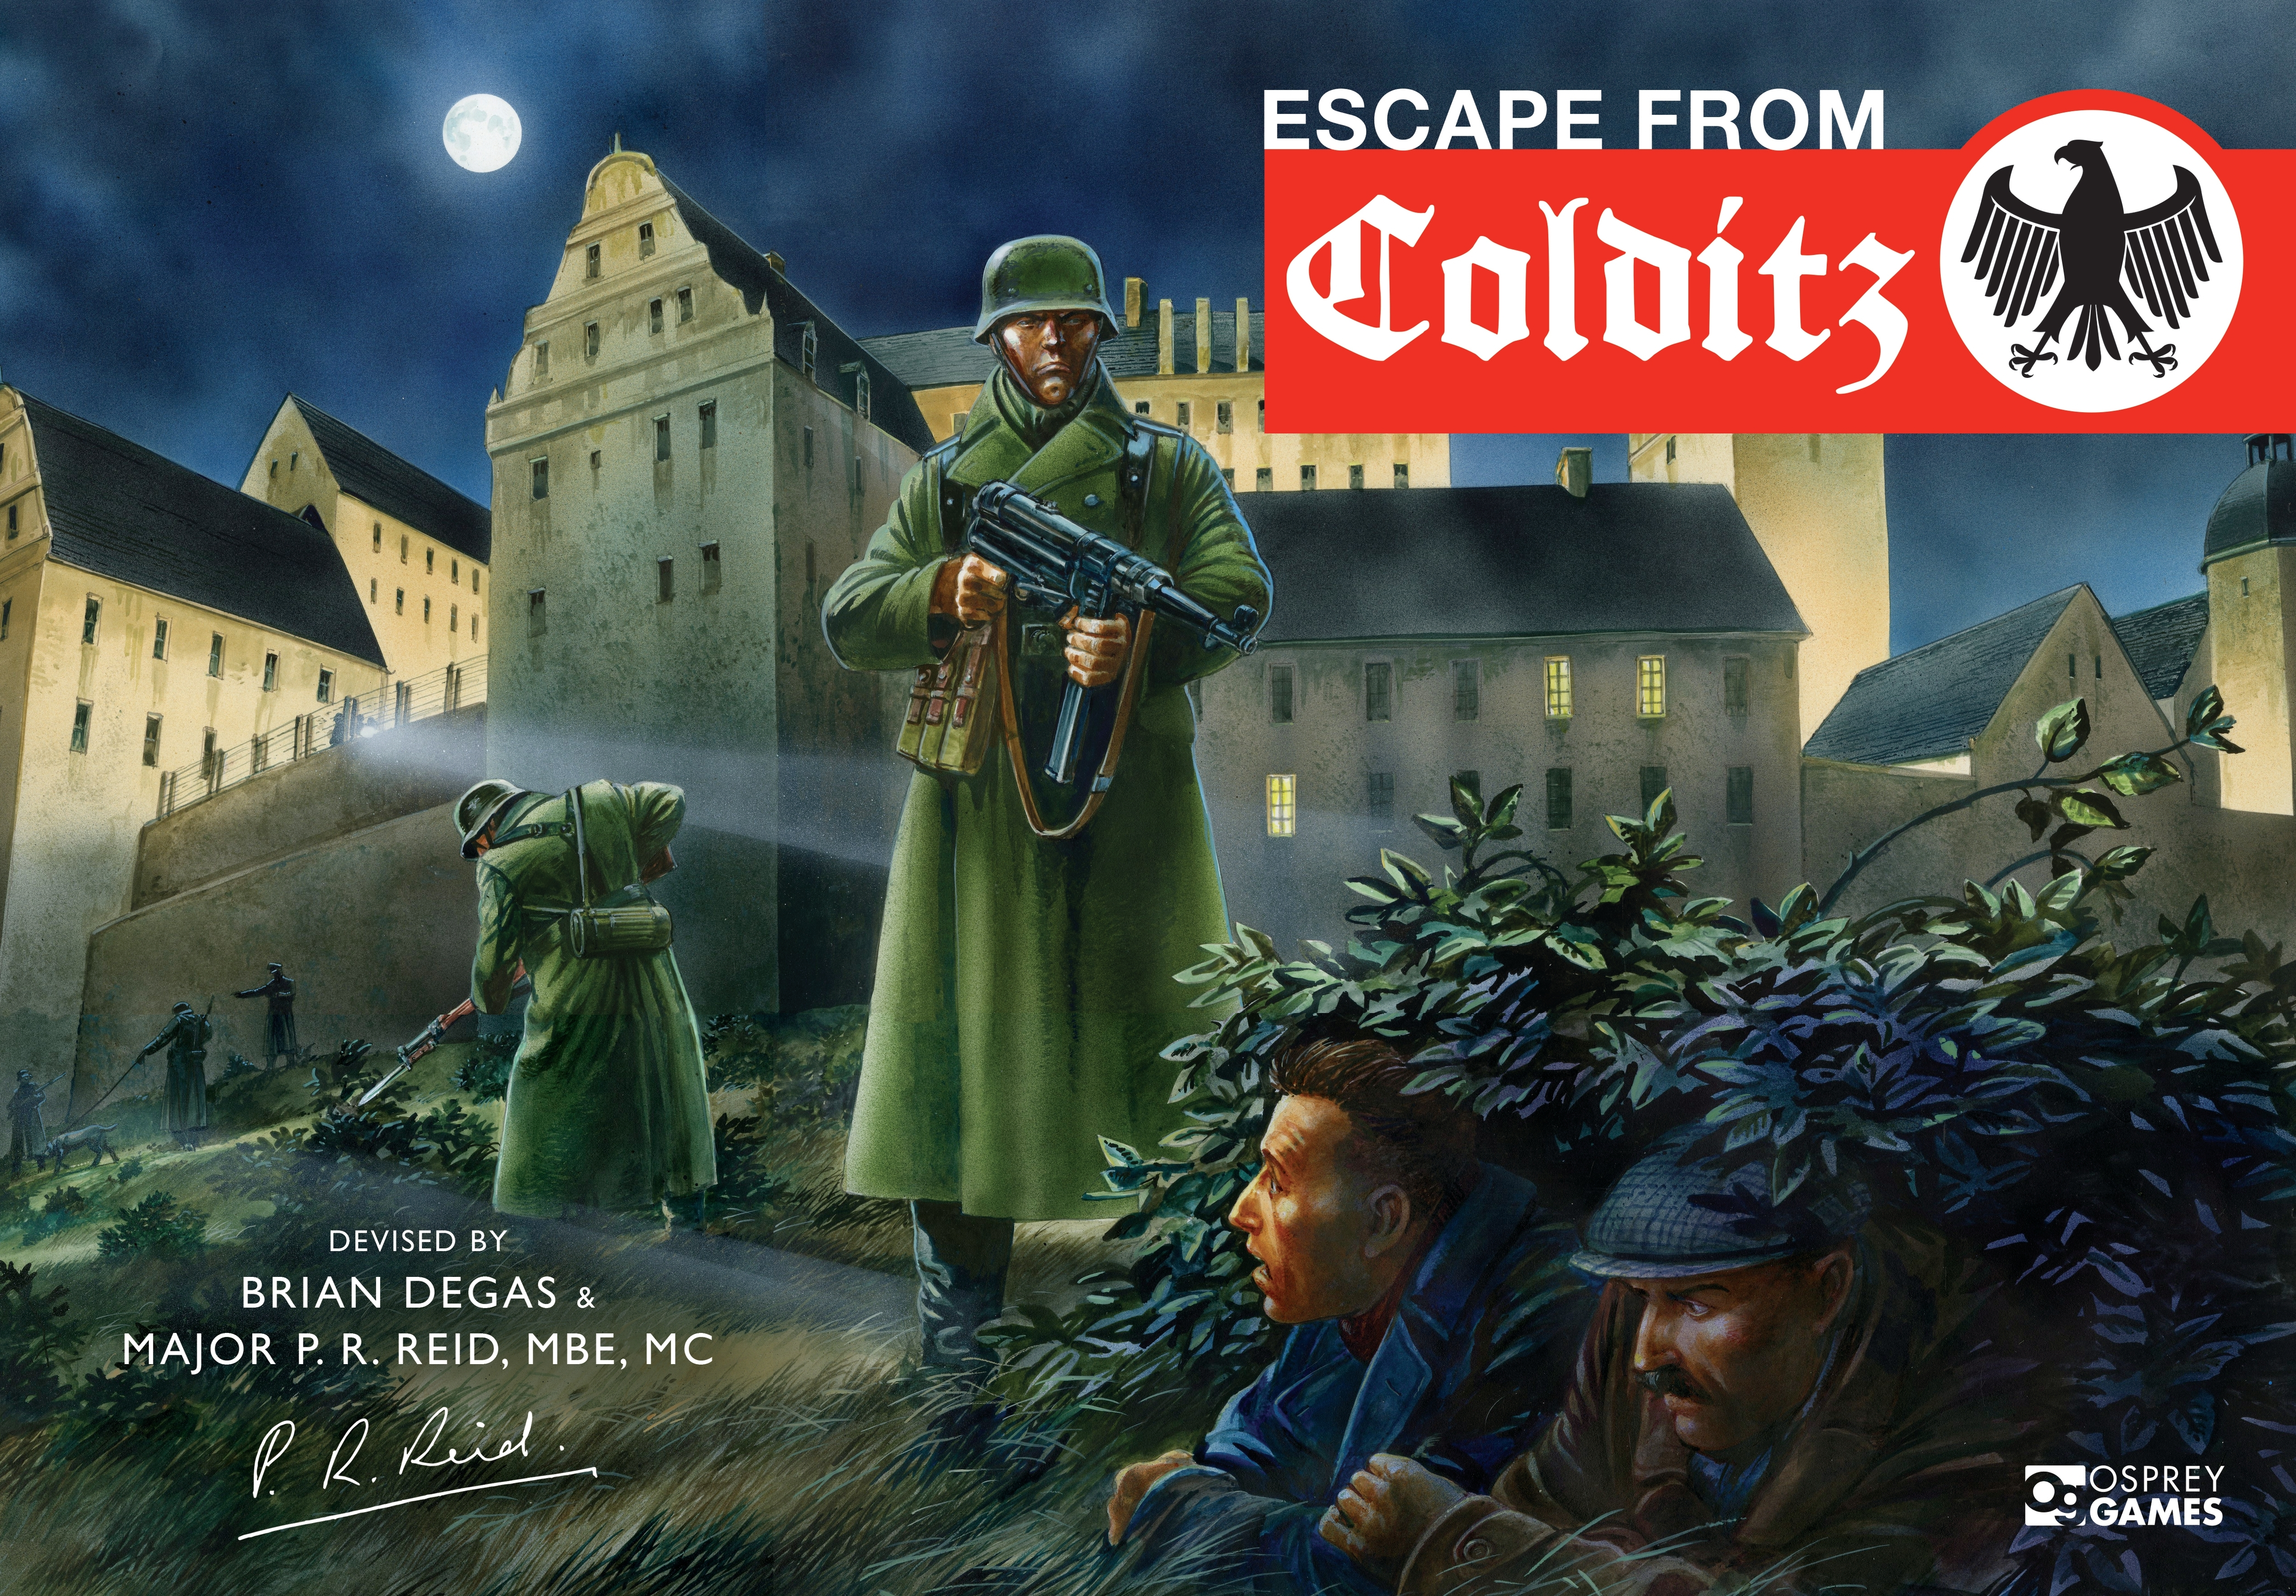 Escape From Codits